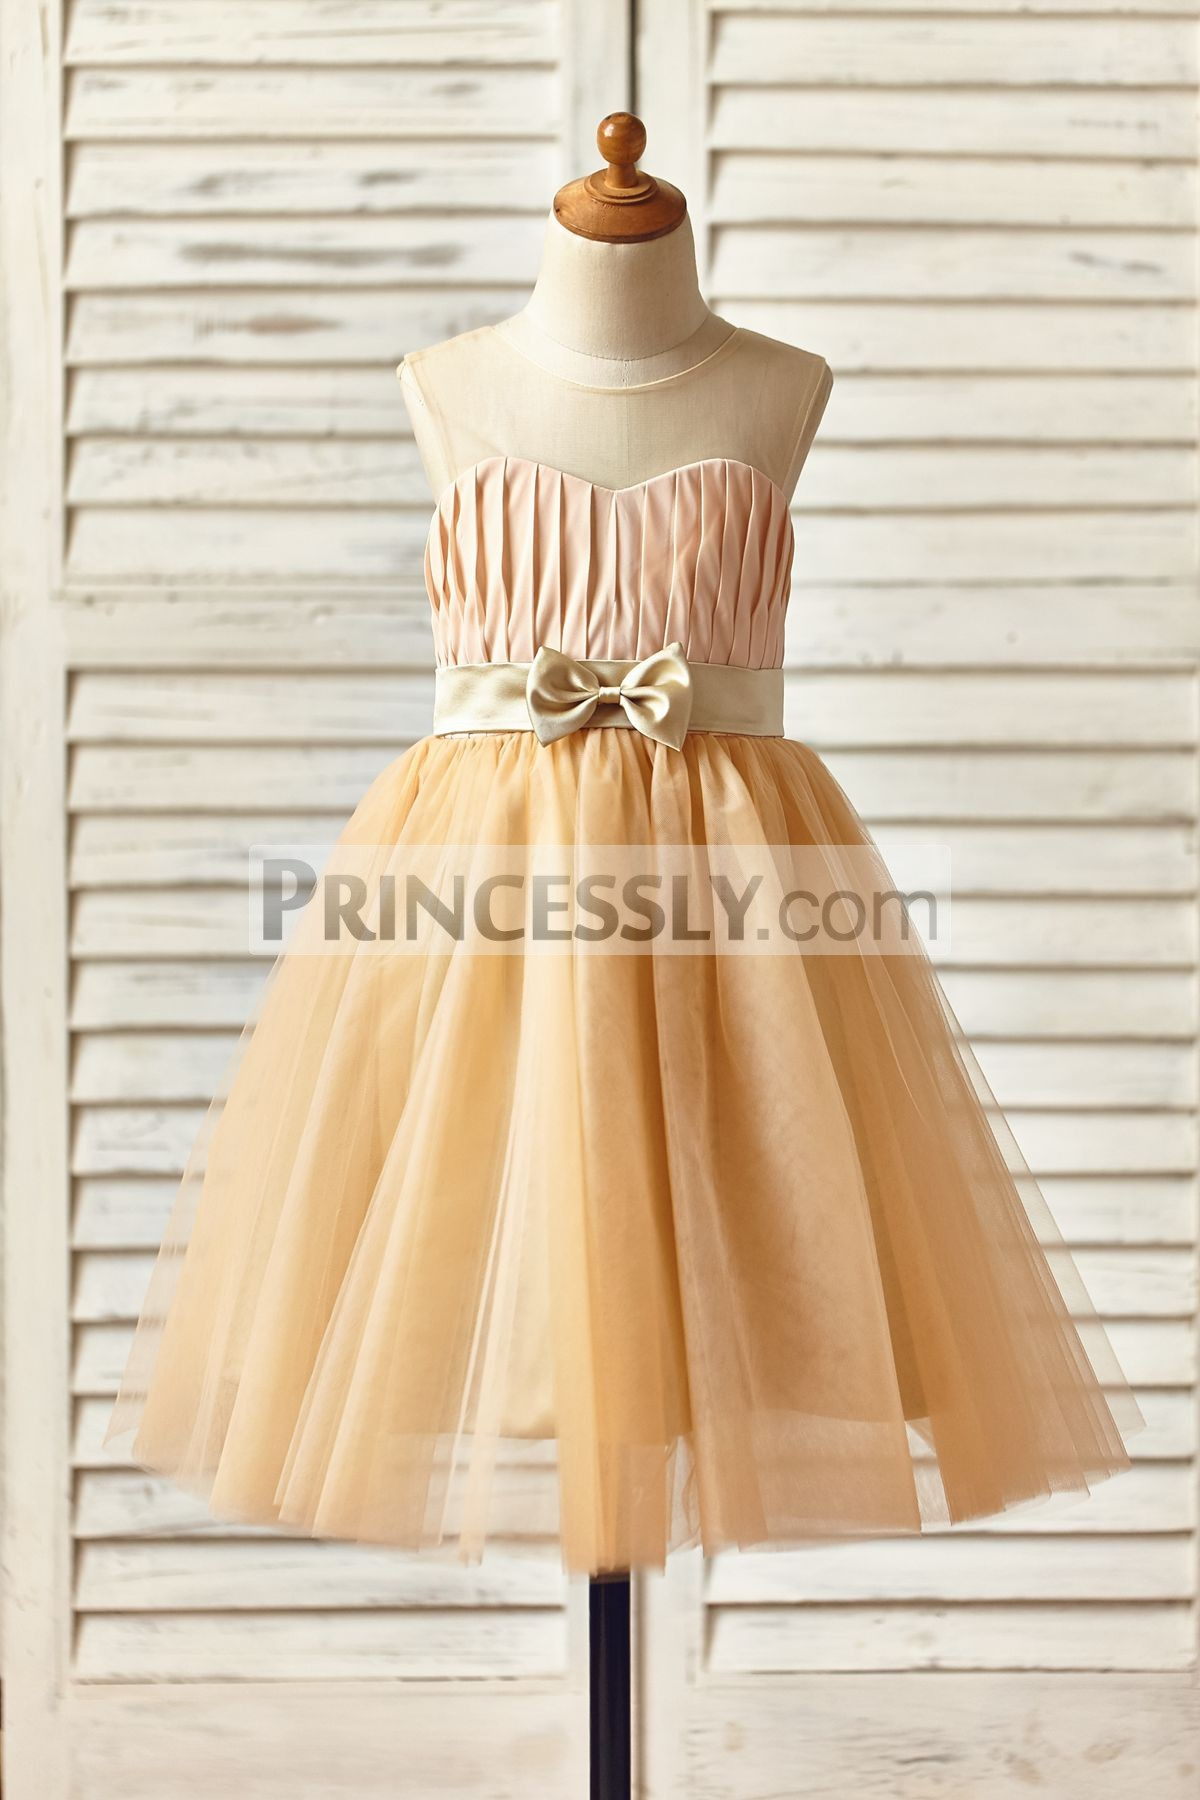 Sheer Neck Champagne Chiffon Pleated Satin Sash Bow Tulle TUTU Flower Girl Dress